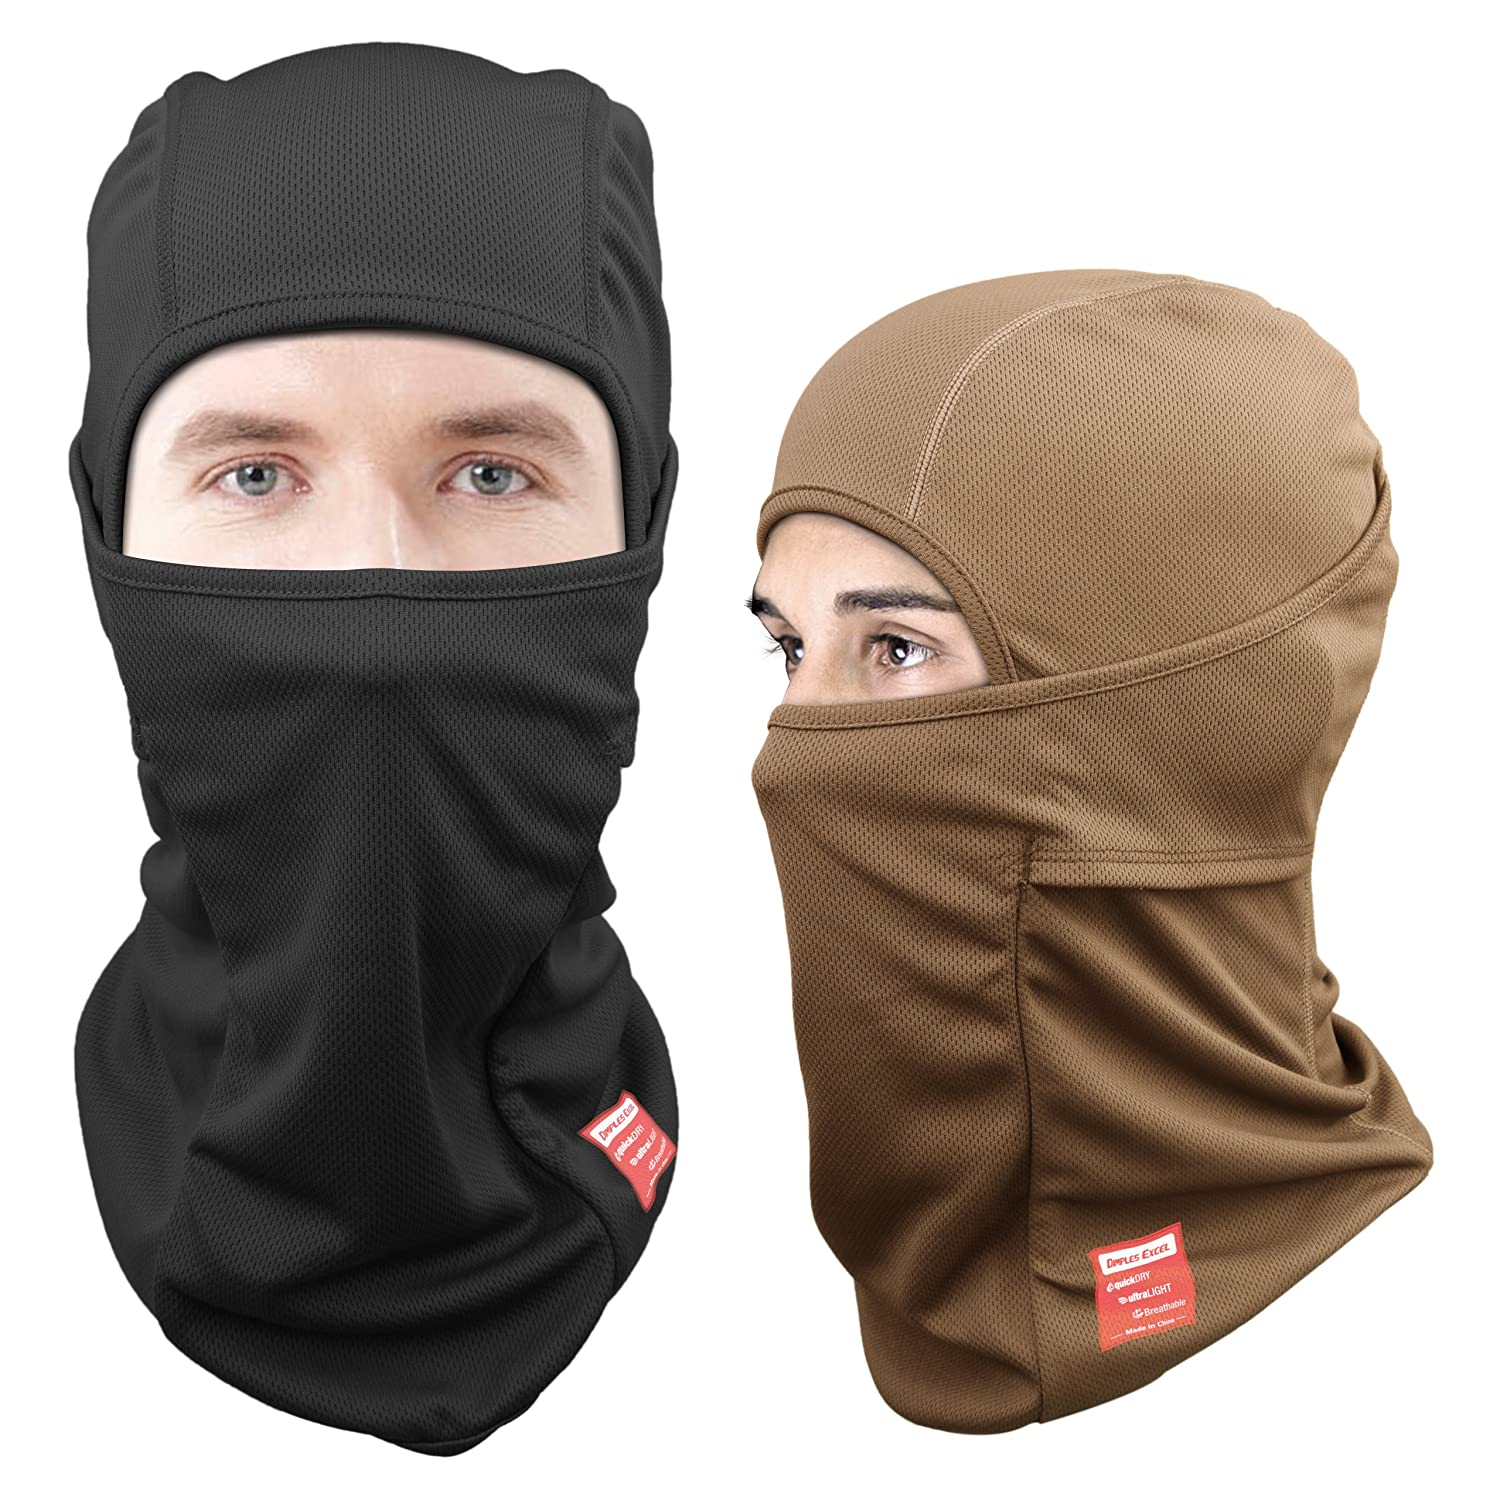 Dimples Excel [2-PACK] Balaclavas for Men Ski Mask Balaclava Hat for Motorcycle Snowboard Outdoor Activities in Winter Dimples Excel Ltd DE100071